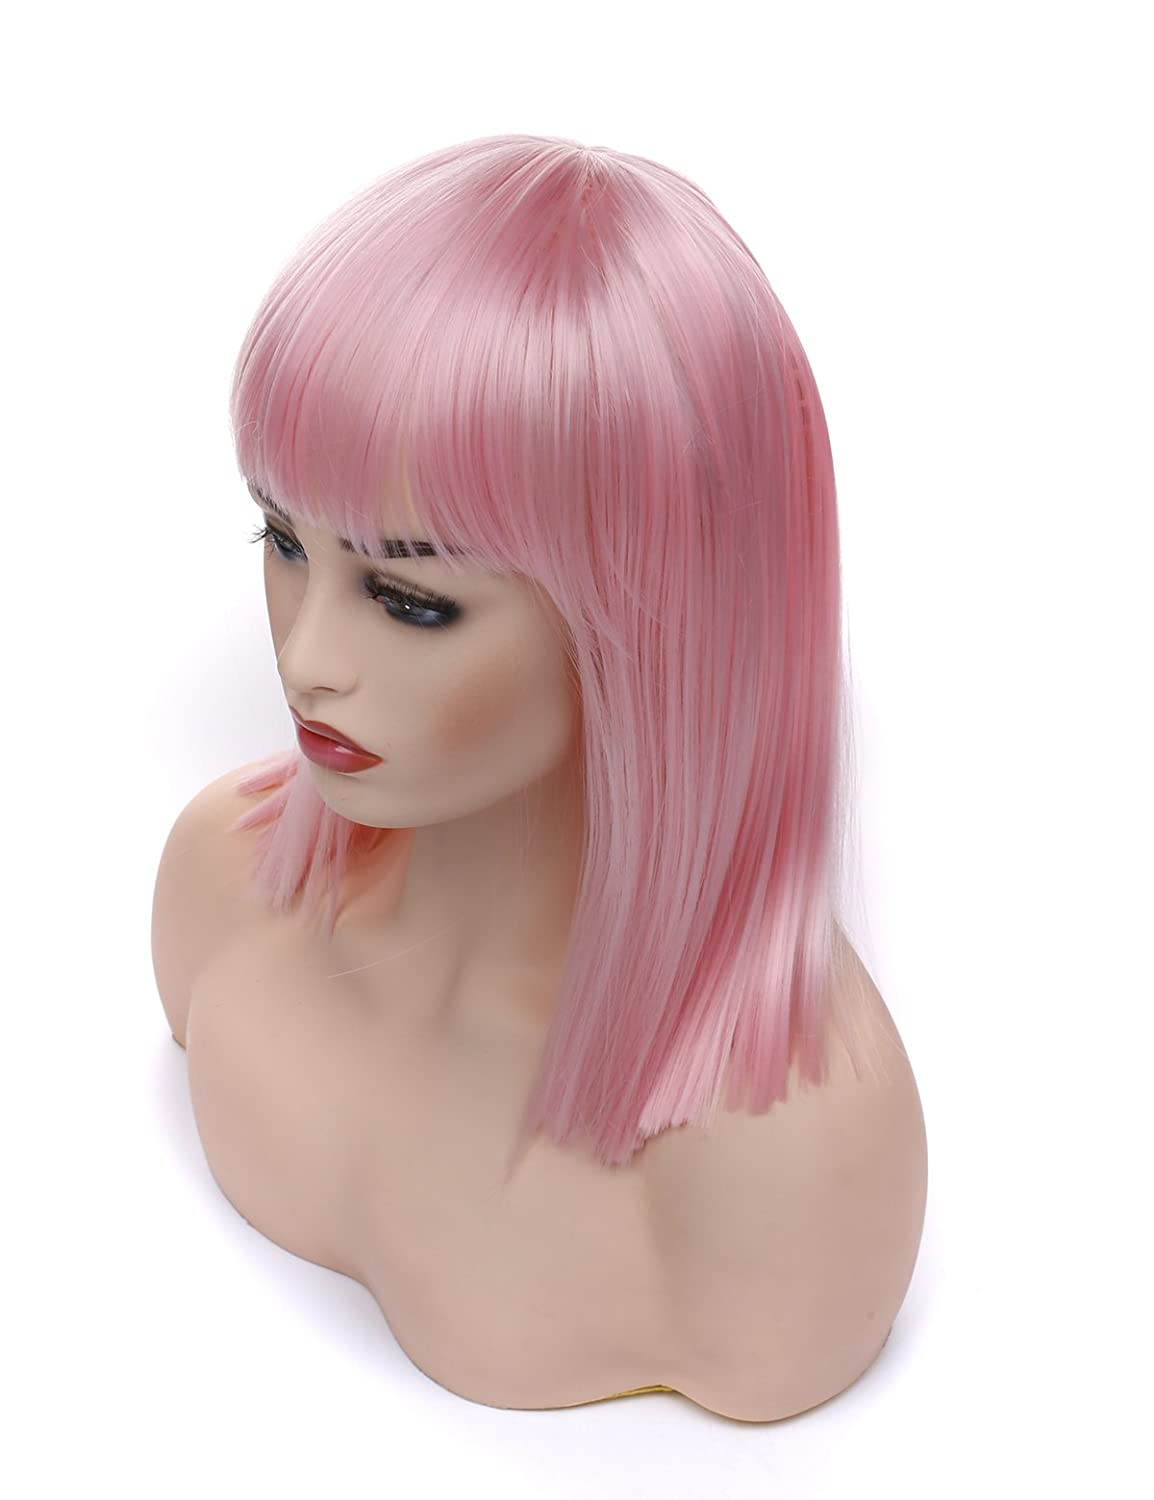 Morvally Short Straight Bob Wig with Flat Bangs Natural Looking Heat Resistant Hair Cosplay Costume Wigs (14 inches Pink)